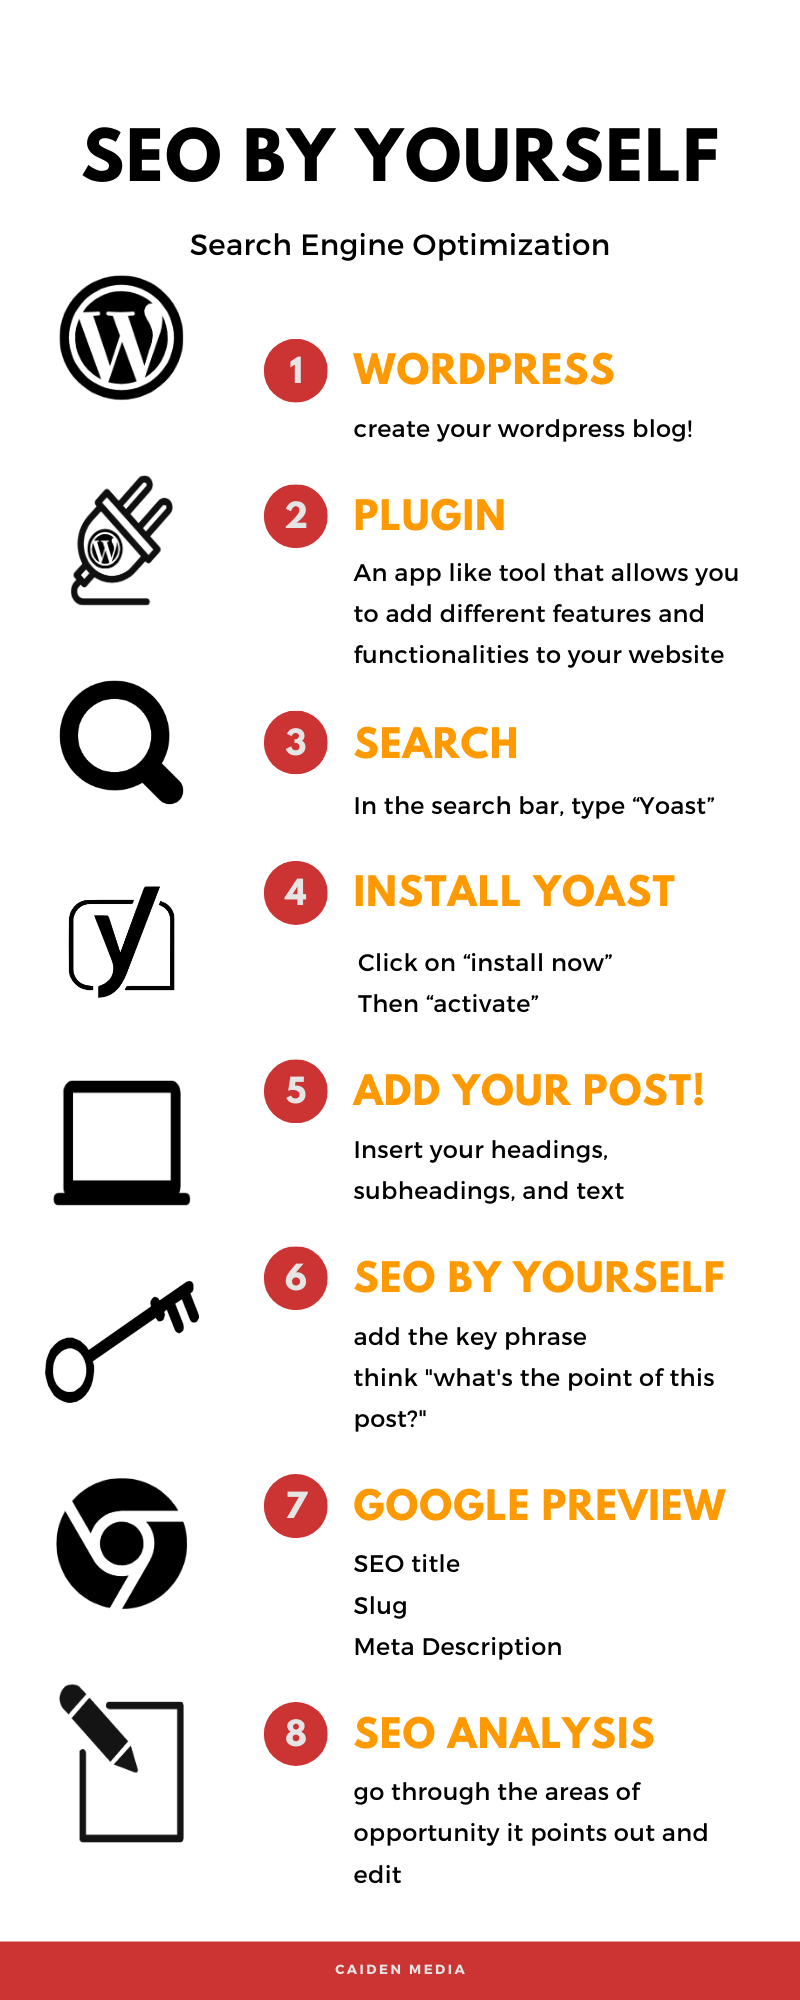 how to do seo myself